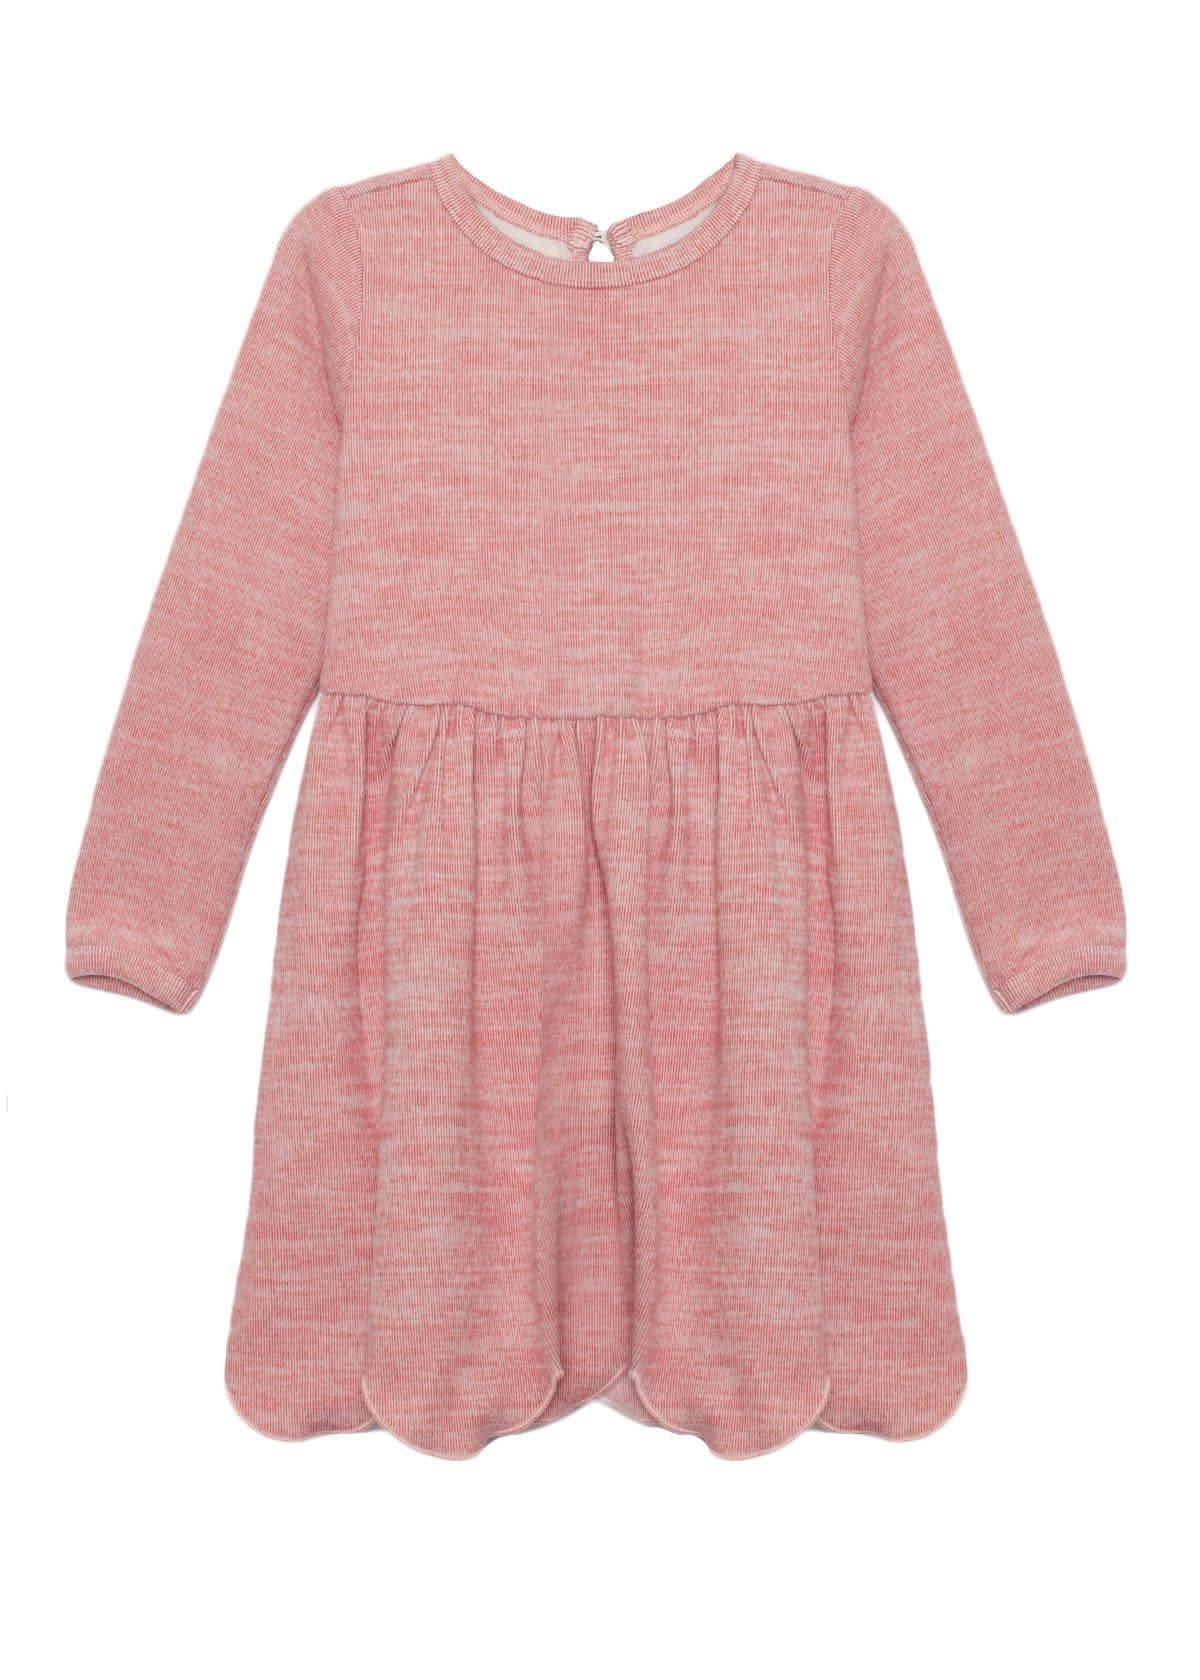 Mabel and Honey Peppermint Brittle Knit Dress